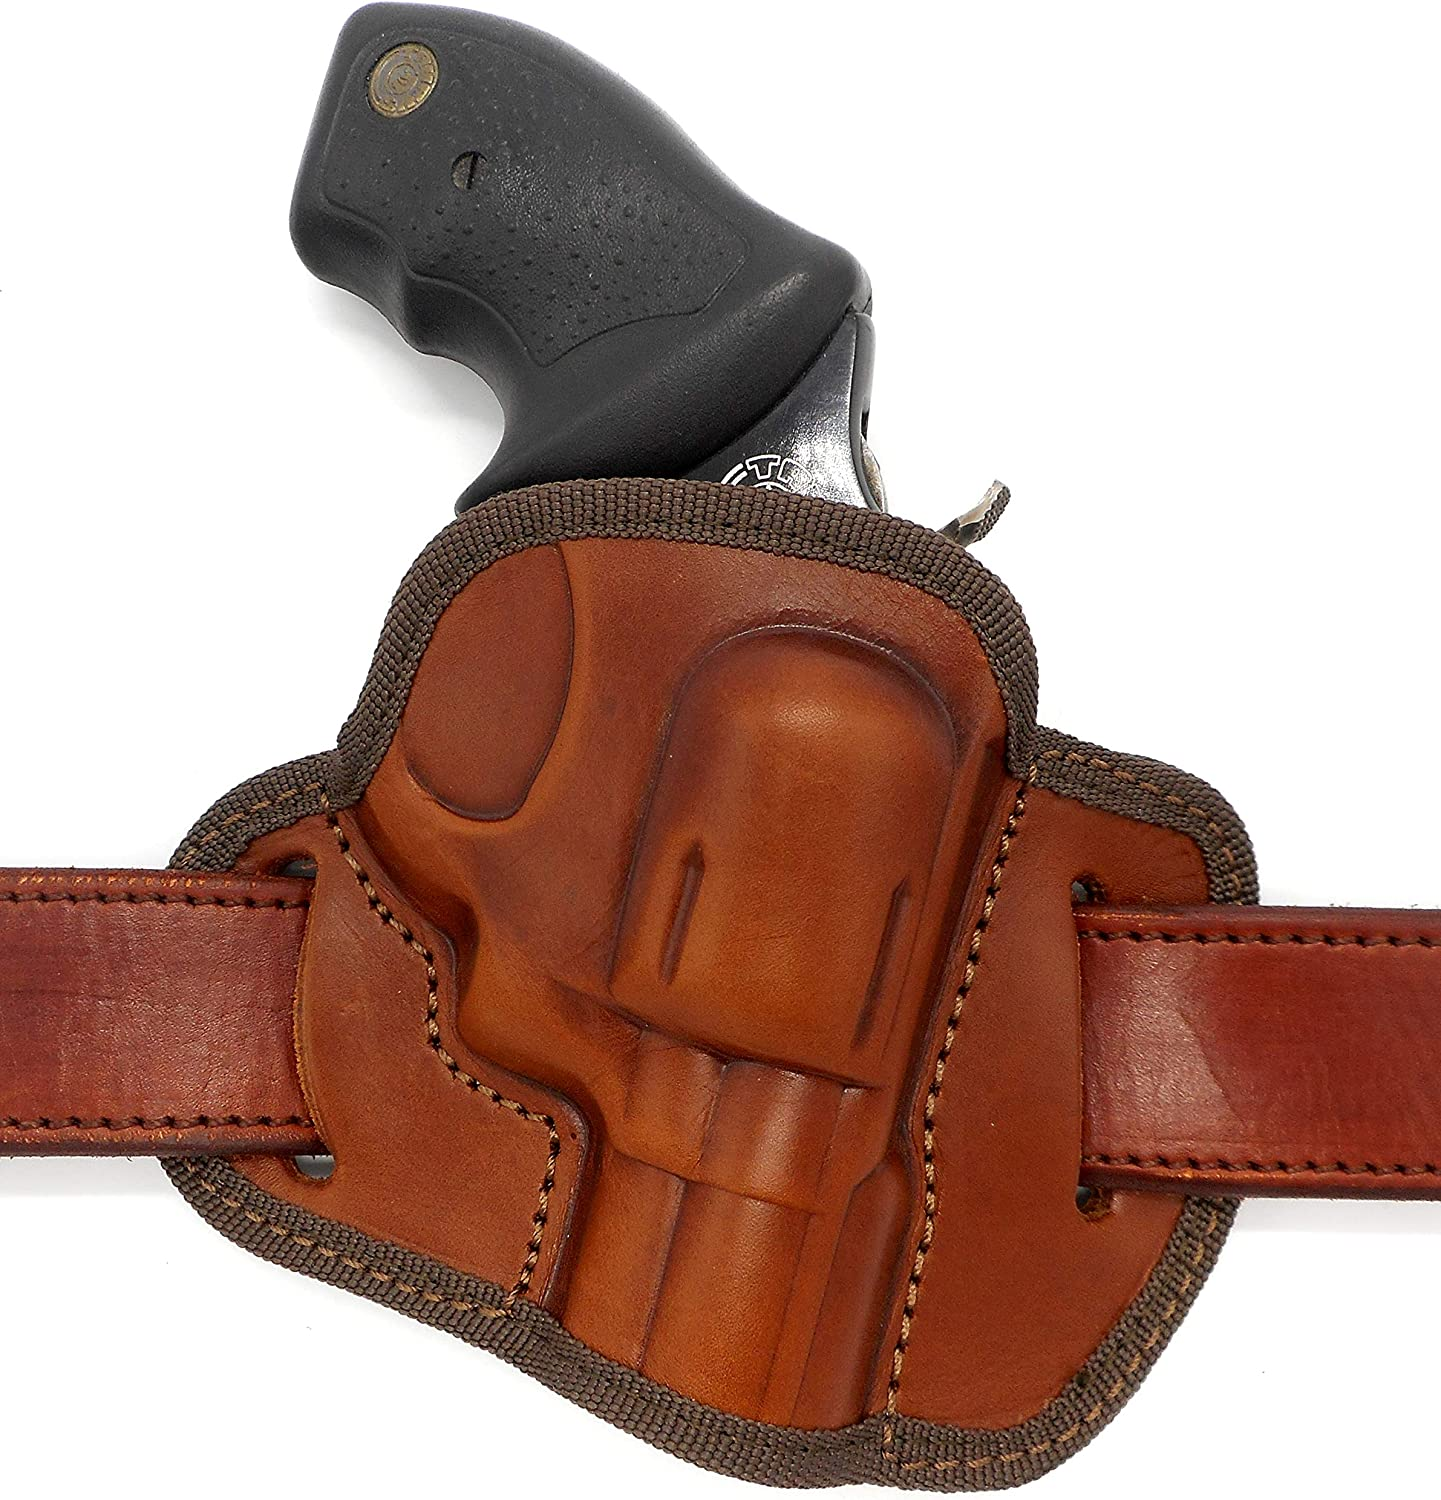 Rapid rise HOLSTERMART USA CEBECI ARMS Limited time for free shipping Brown Leather Right OWB Han Top Open